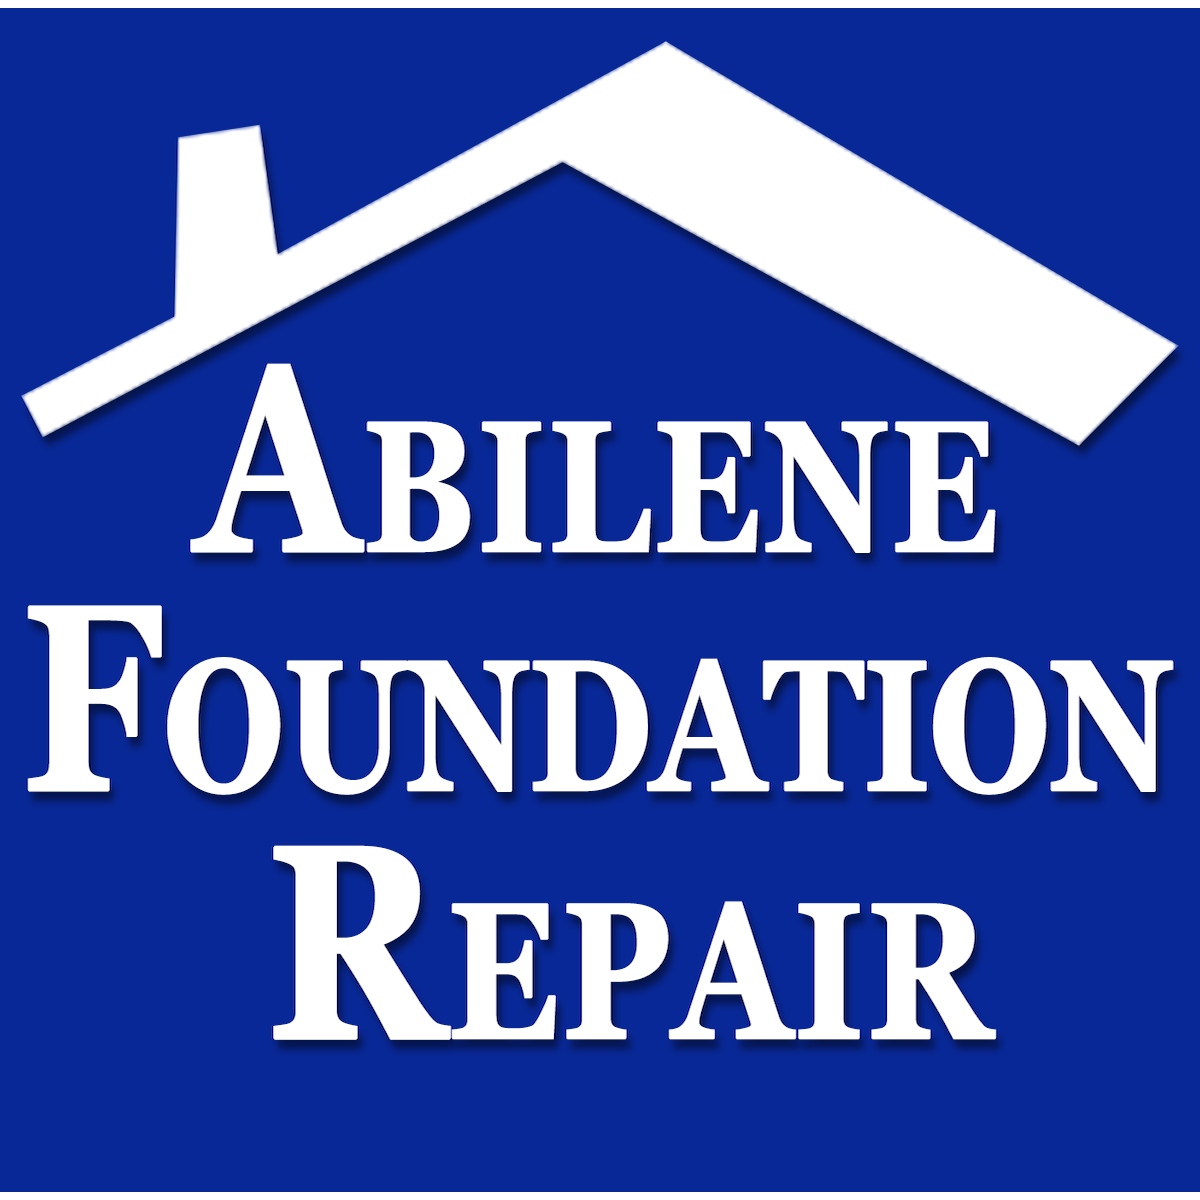 Abilene Foundation Repair